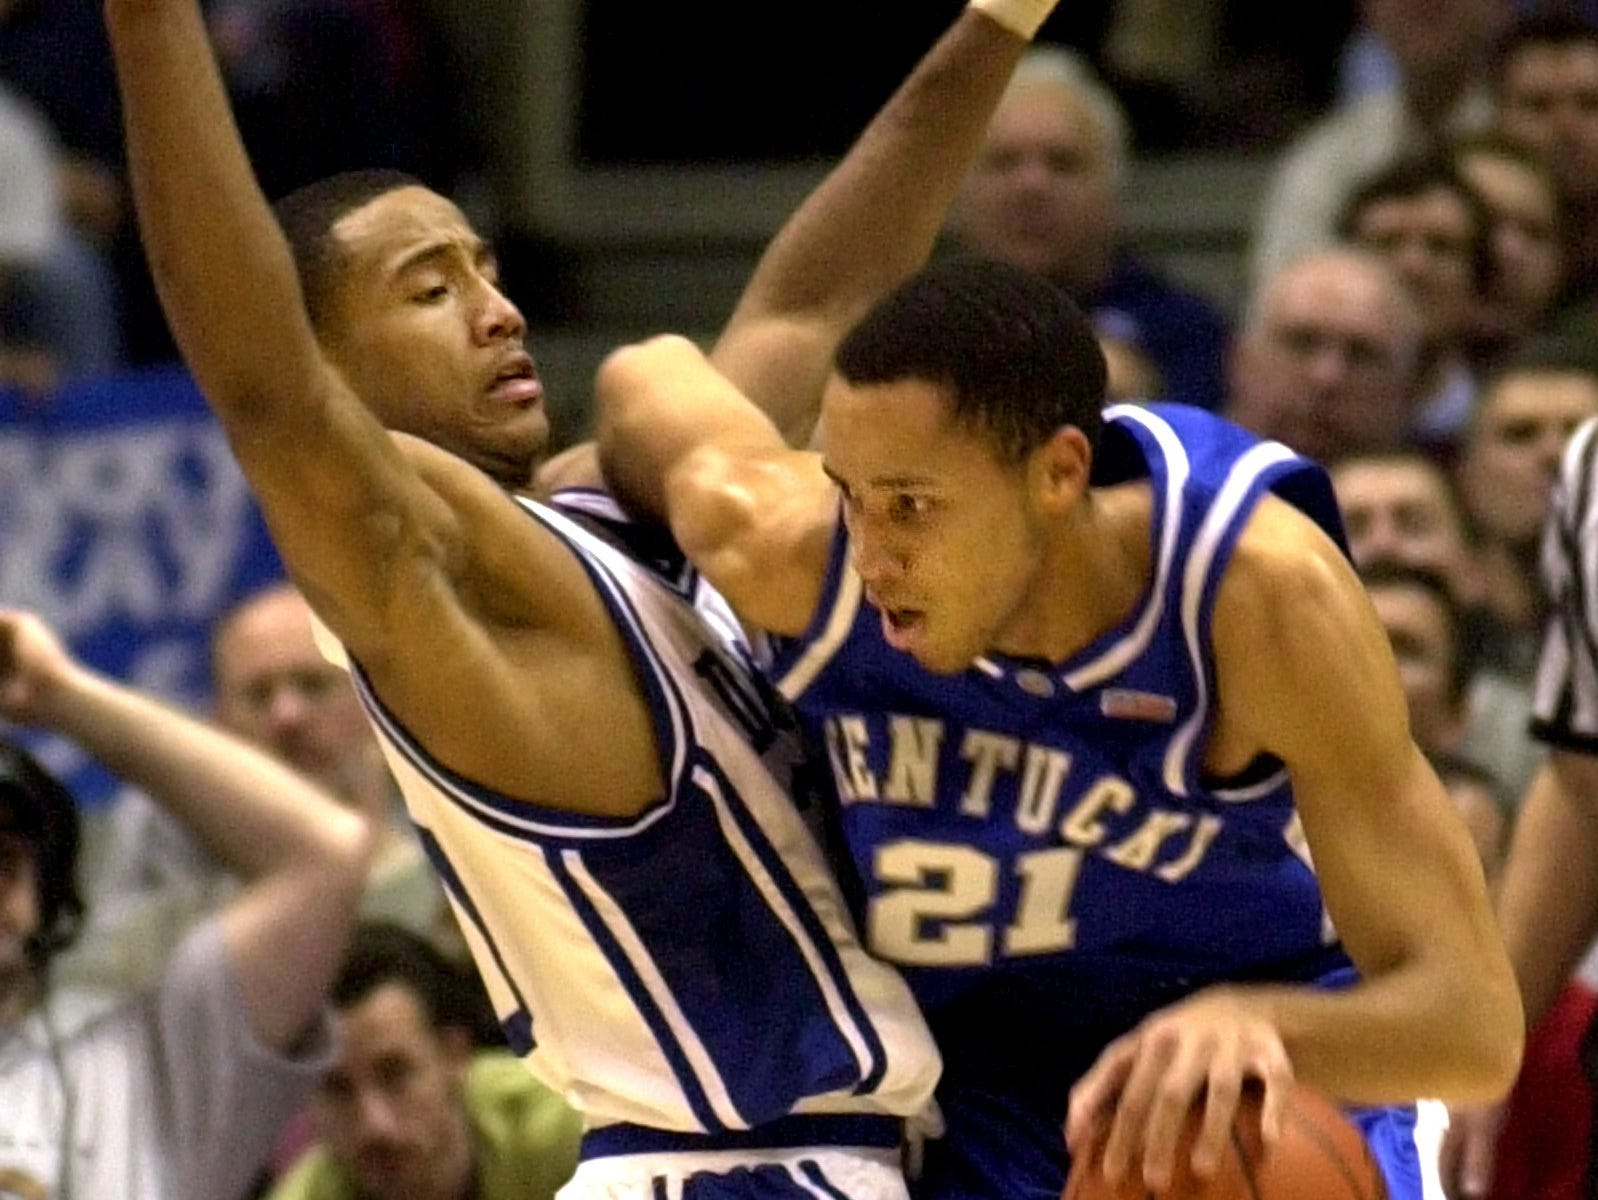 Kentucky's Tayshaun Prince, right, runs into the defense of Duke's Dahntay Jones during the first half of the Jimmy V Classic Tuesday night, Dec. 18, 2001, in East Rutherford, N.J.